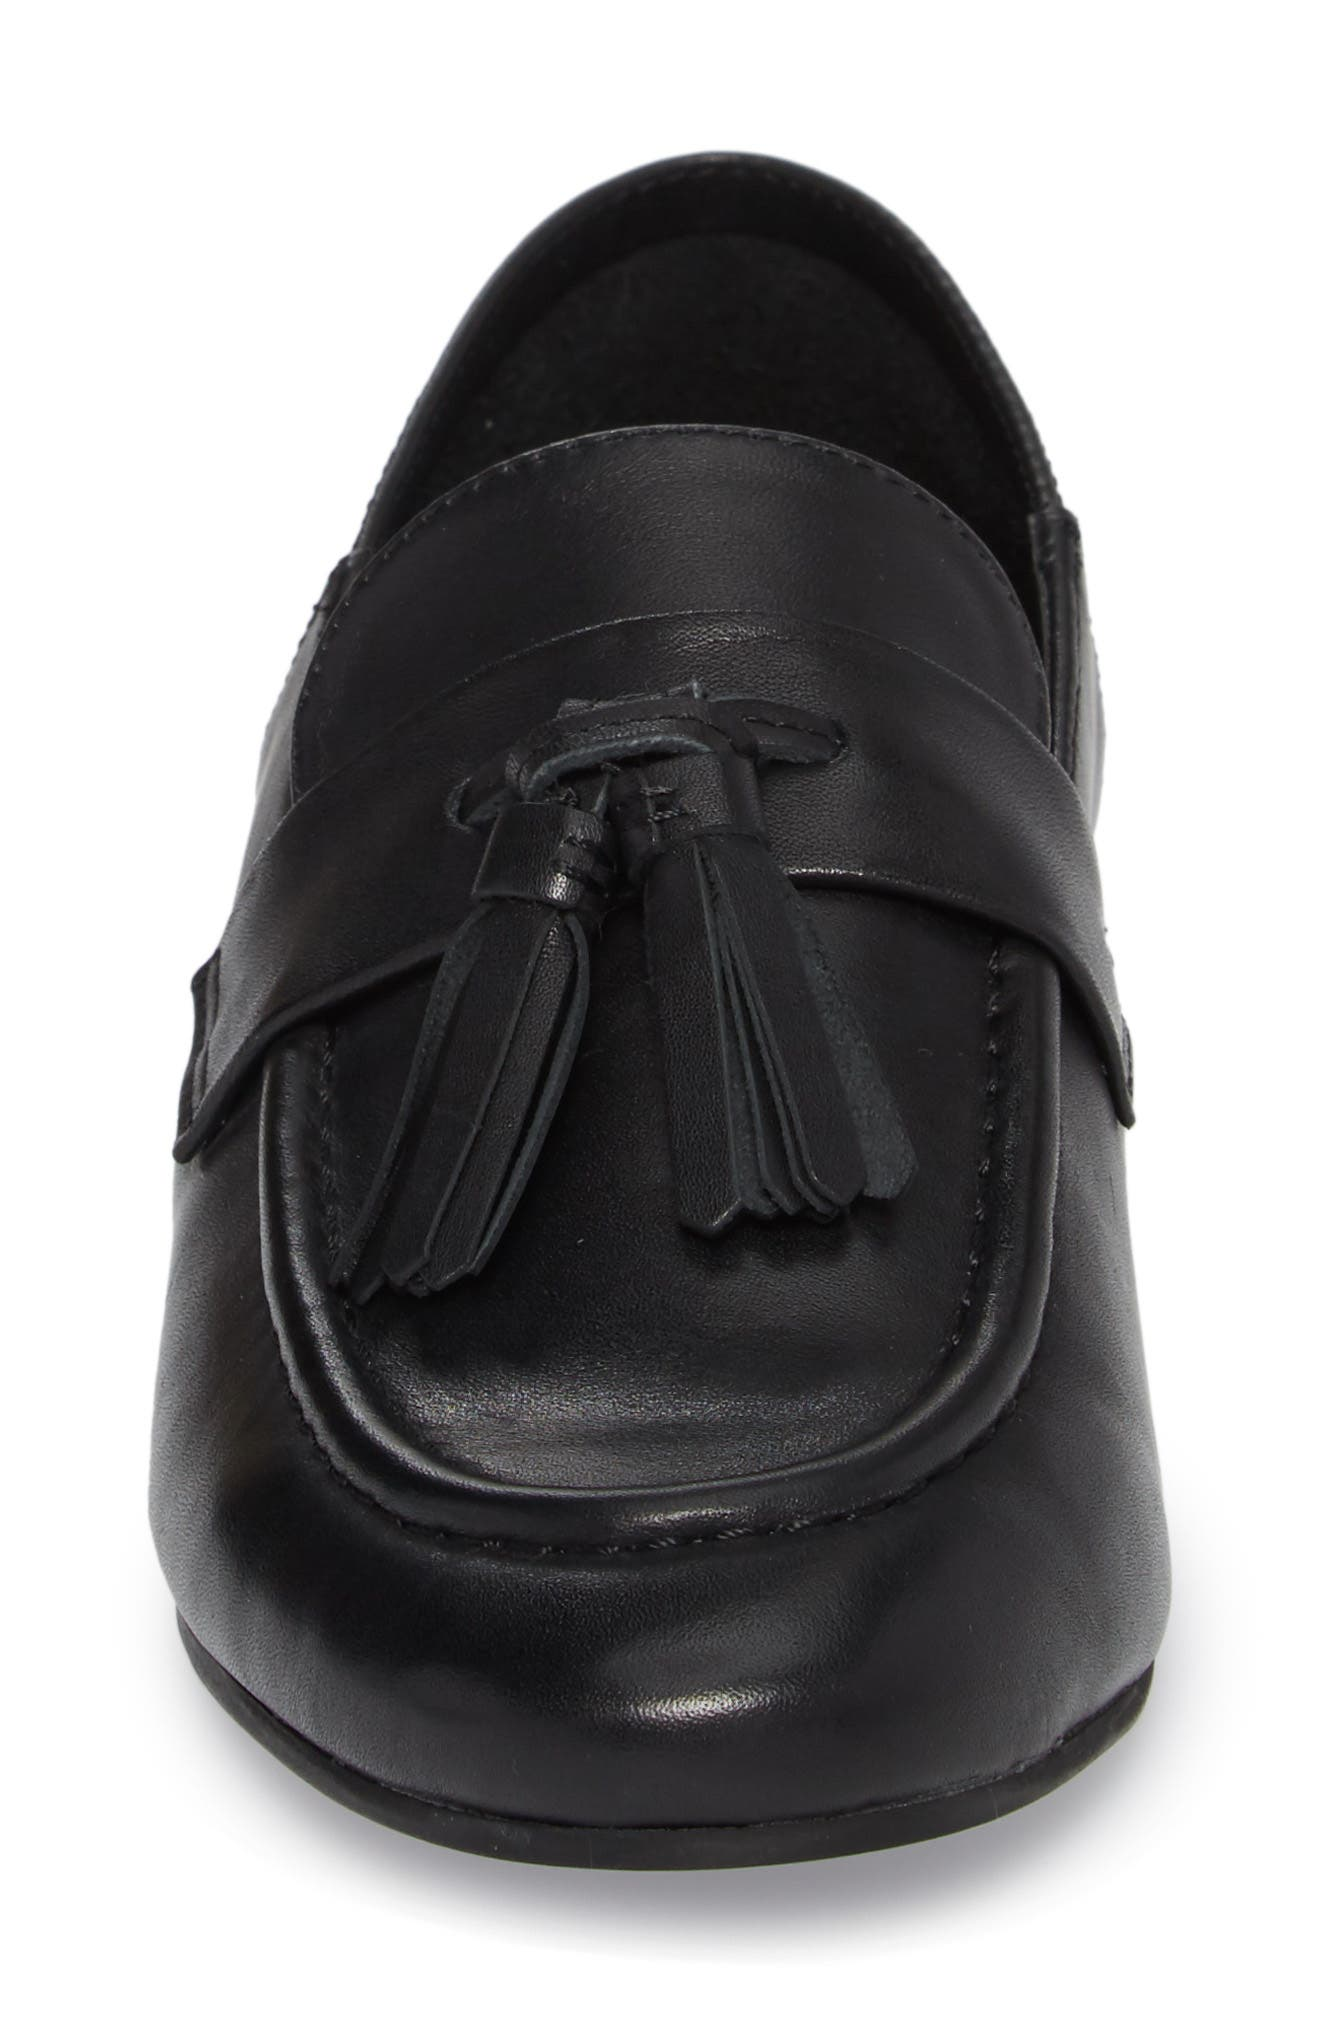 Beck Convertible Tasseled Loafer,                             Alternate thumbnail 5, color,                             Black Leather